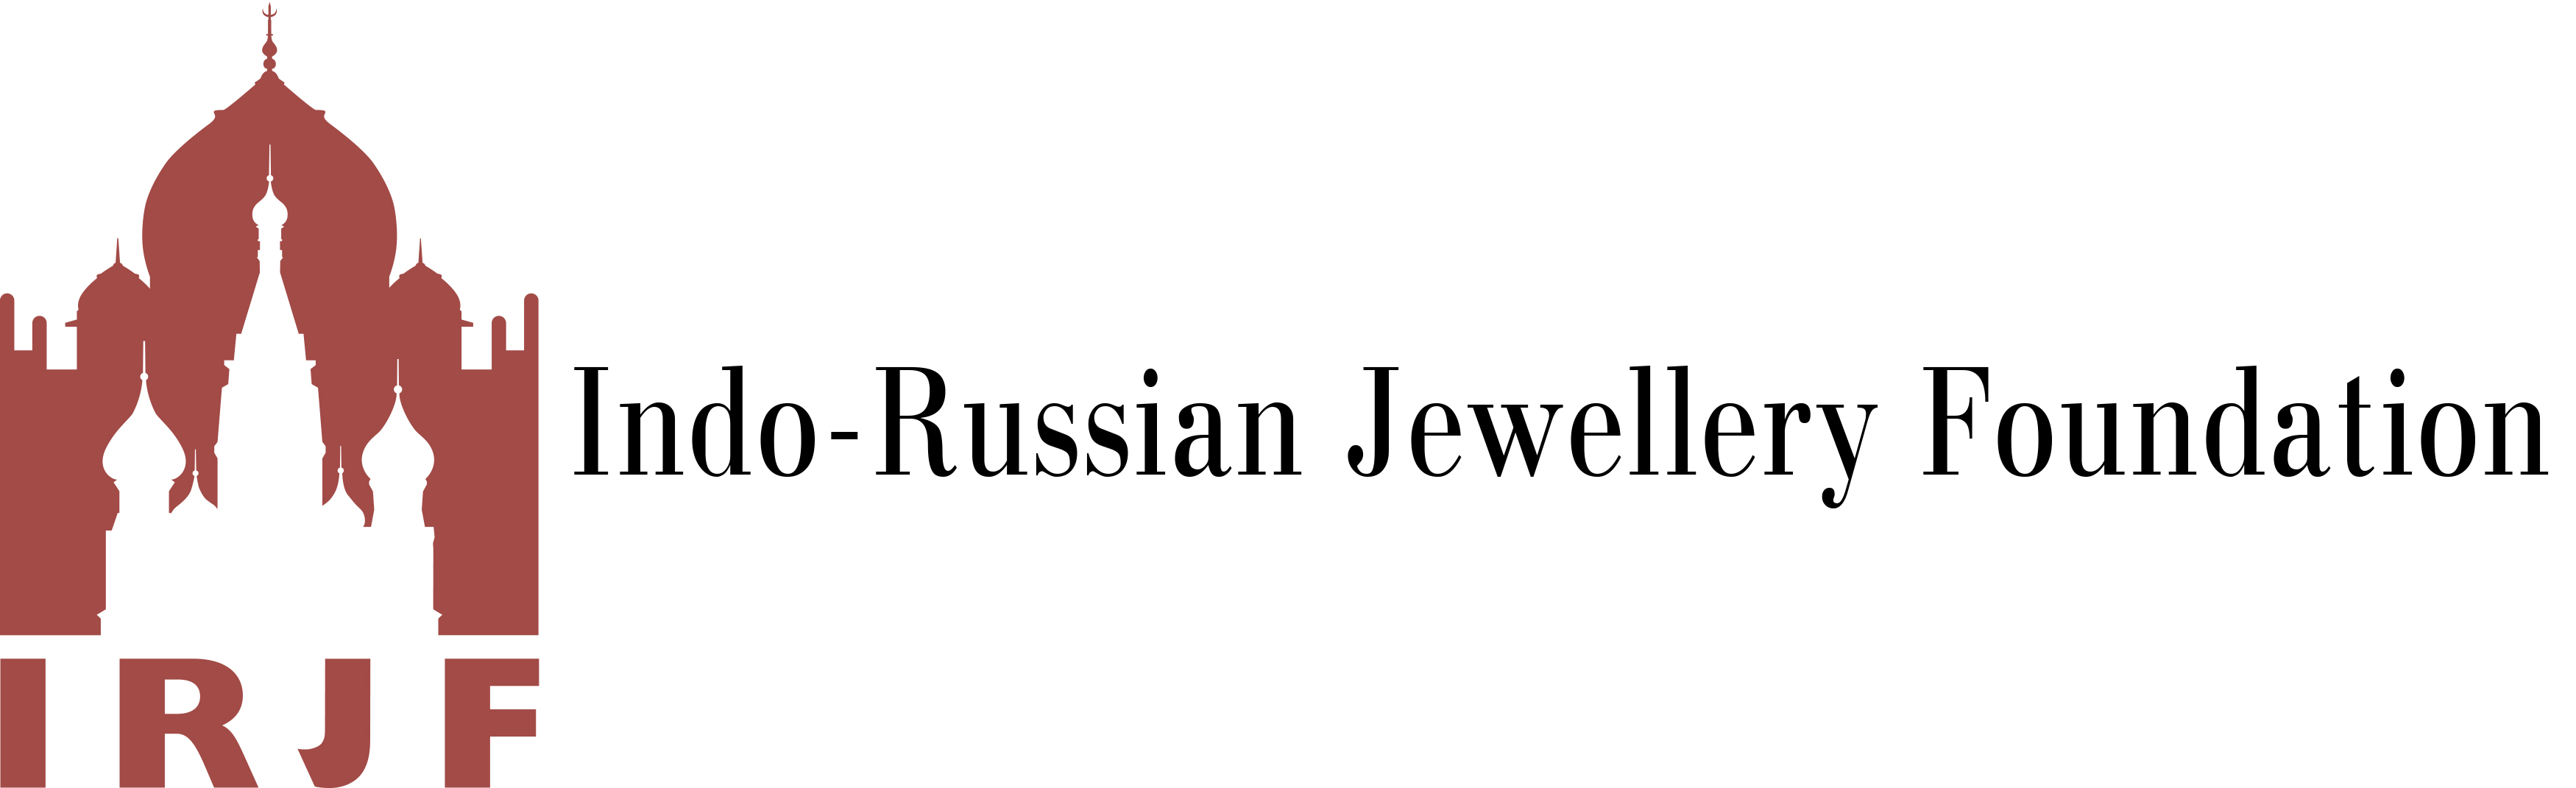 Indo-Russian Jewellery Foundation logo